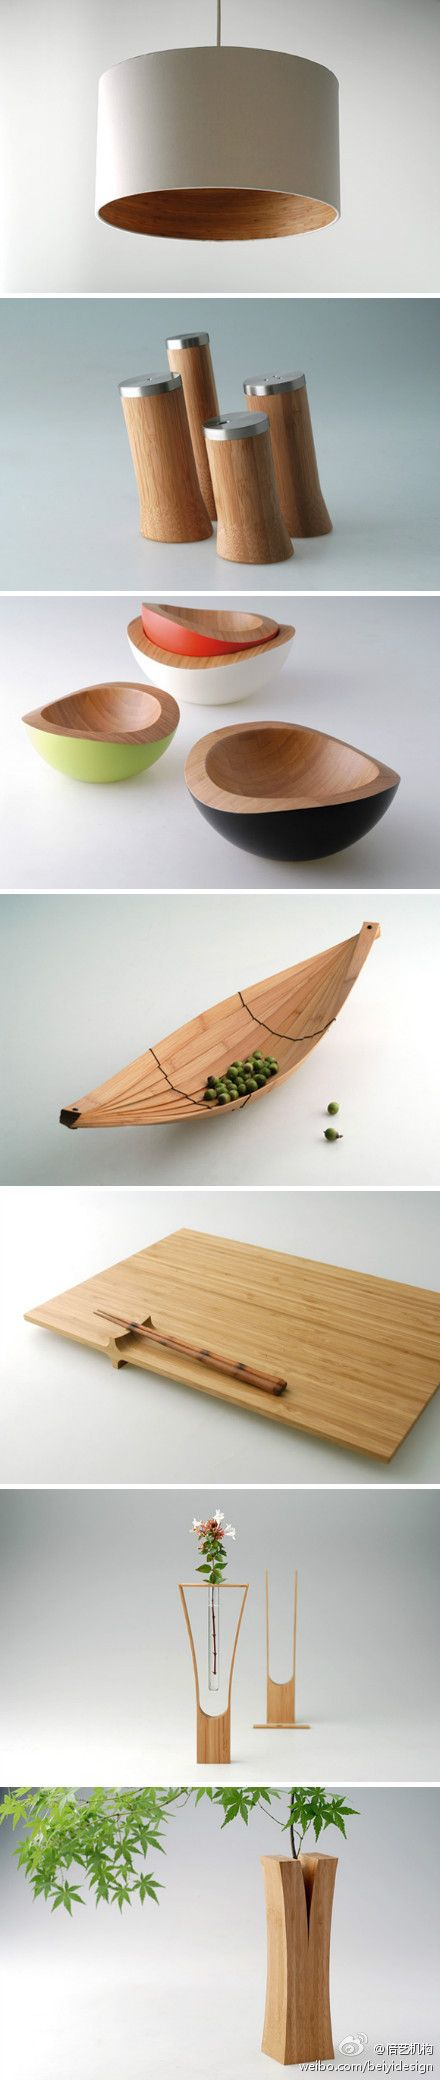 wood design #piel #shoppiel #inspiration! Neat pics of smooth wooden products! Aline ♥